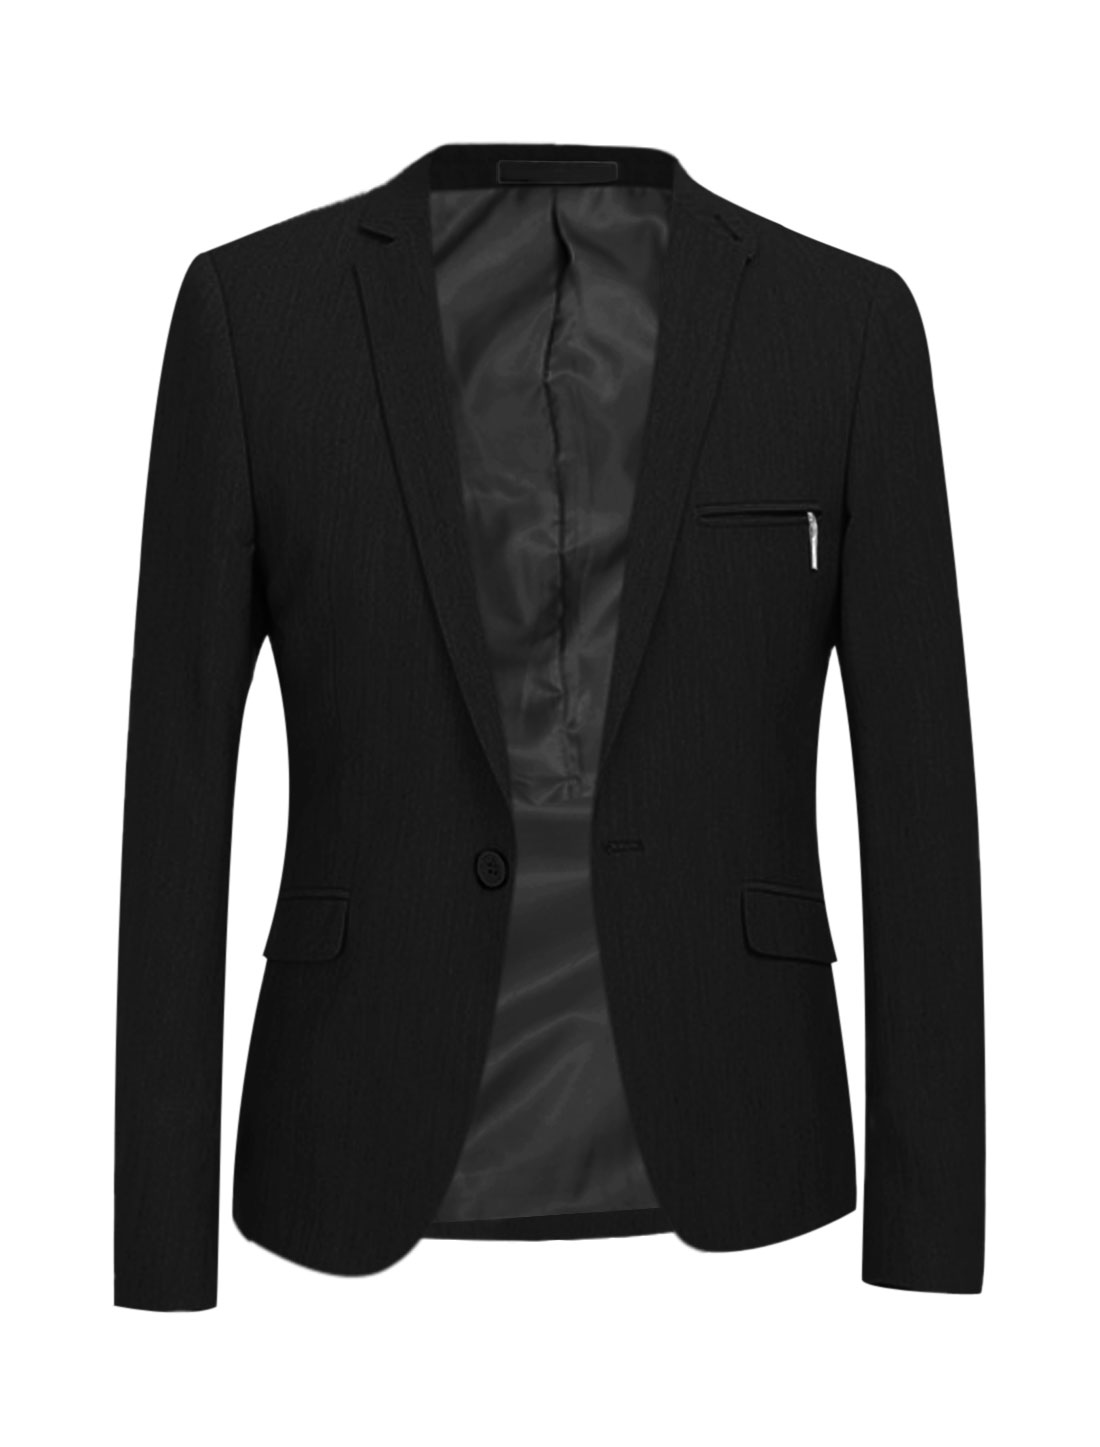 Men Notched Lapel One Button Closure Long Sleeves Blazer Black M